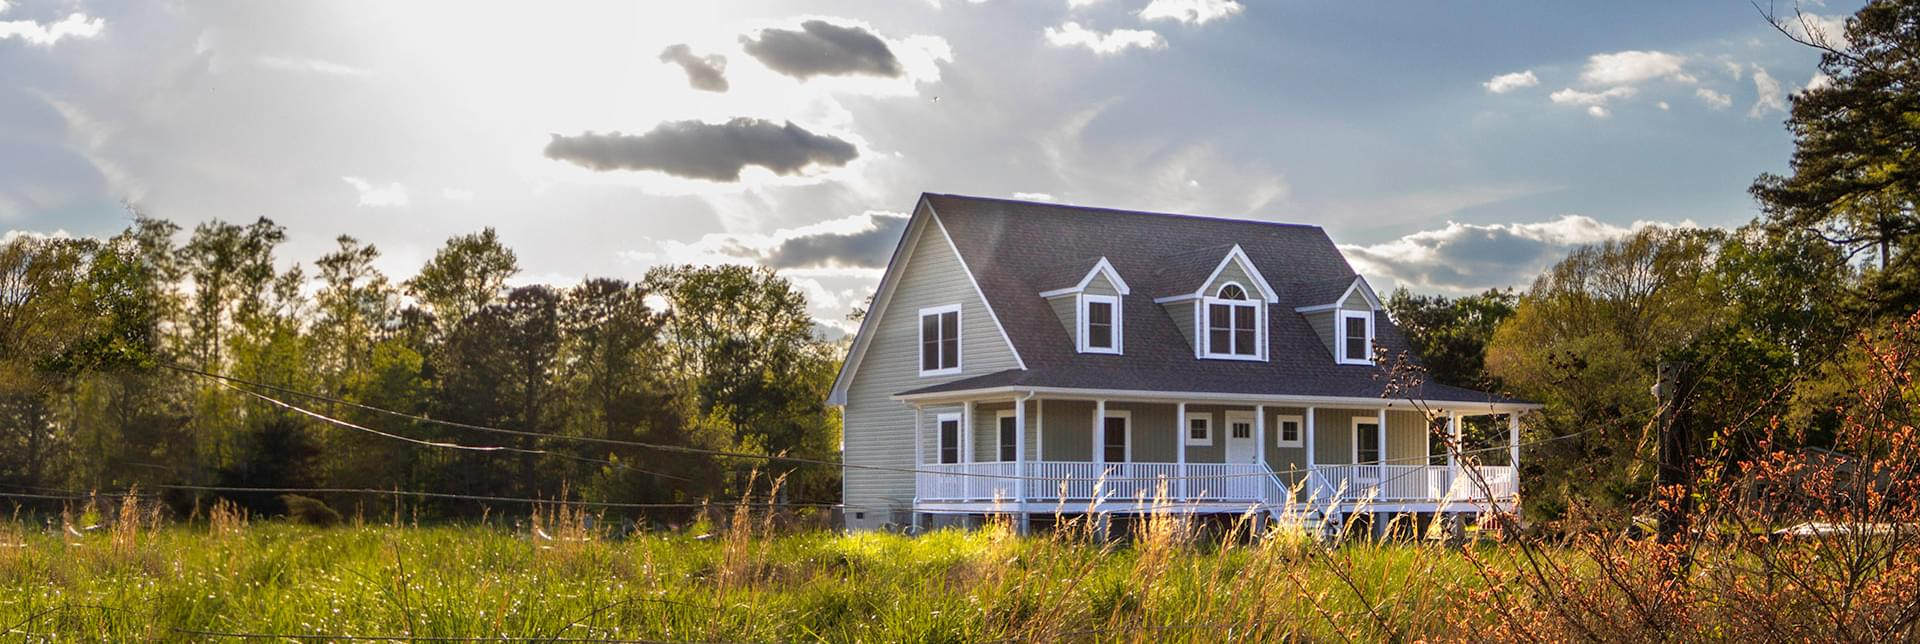 New Homes in Calvert County MD